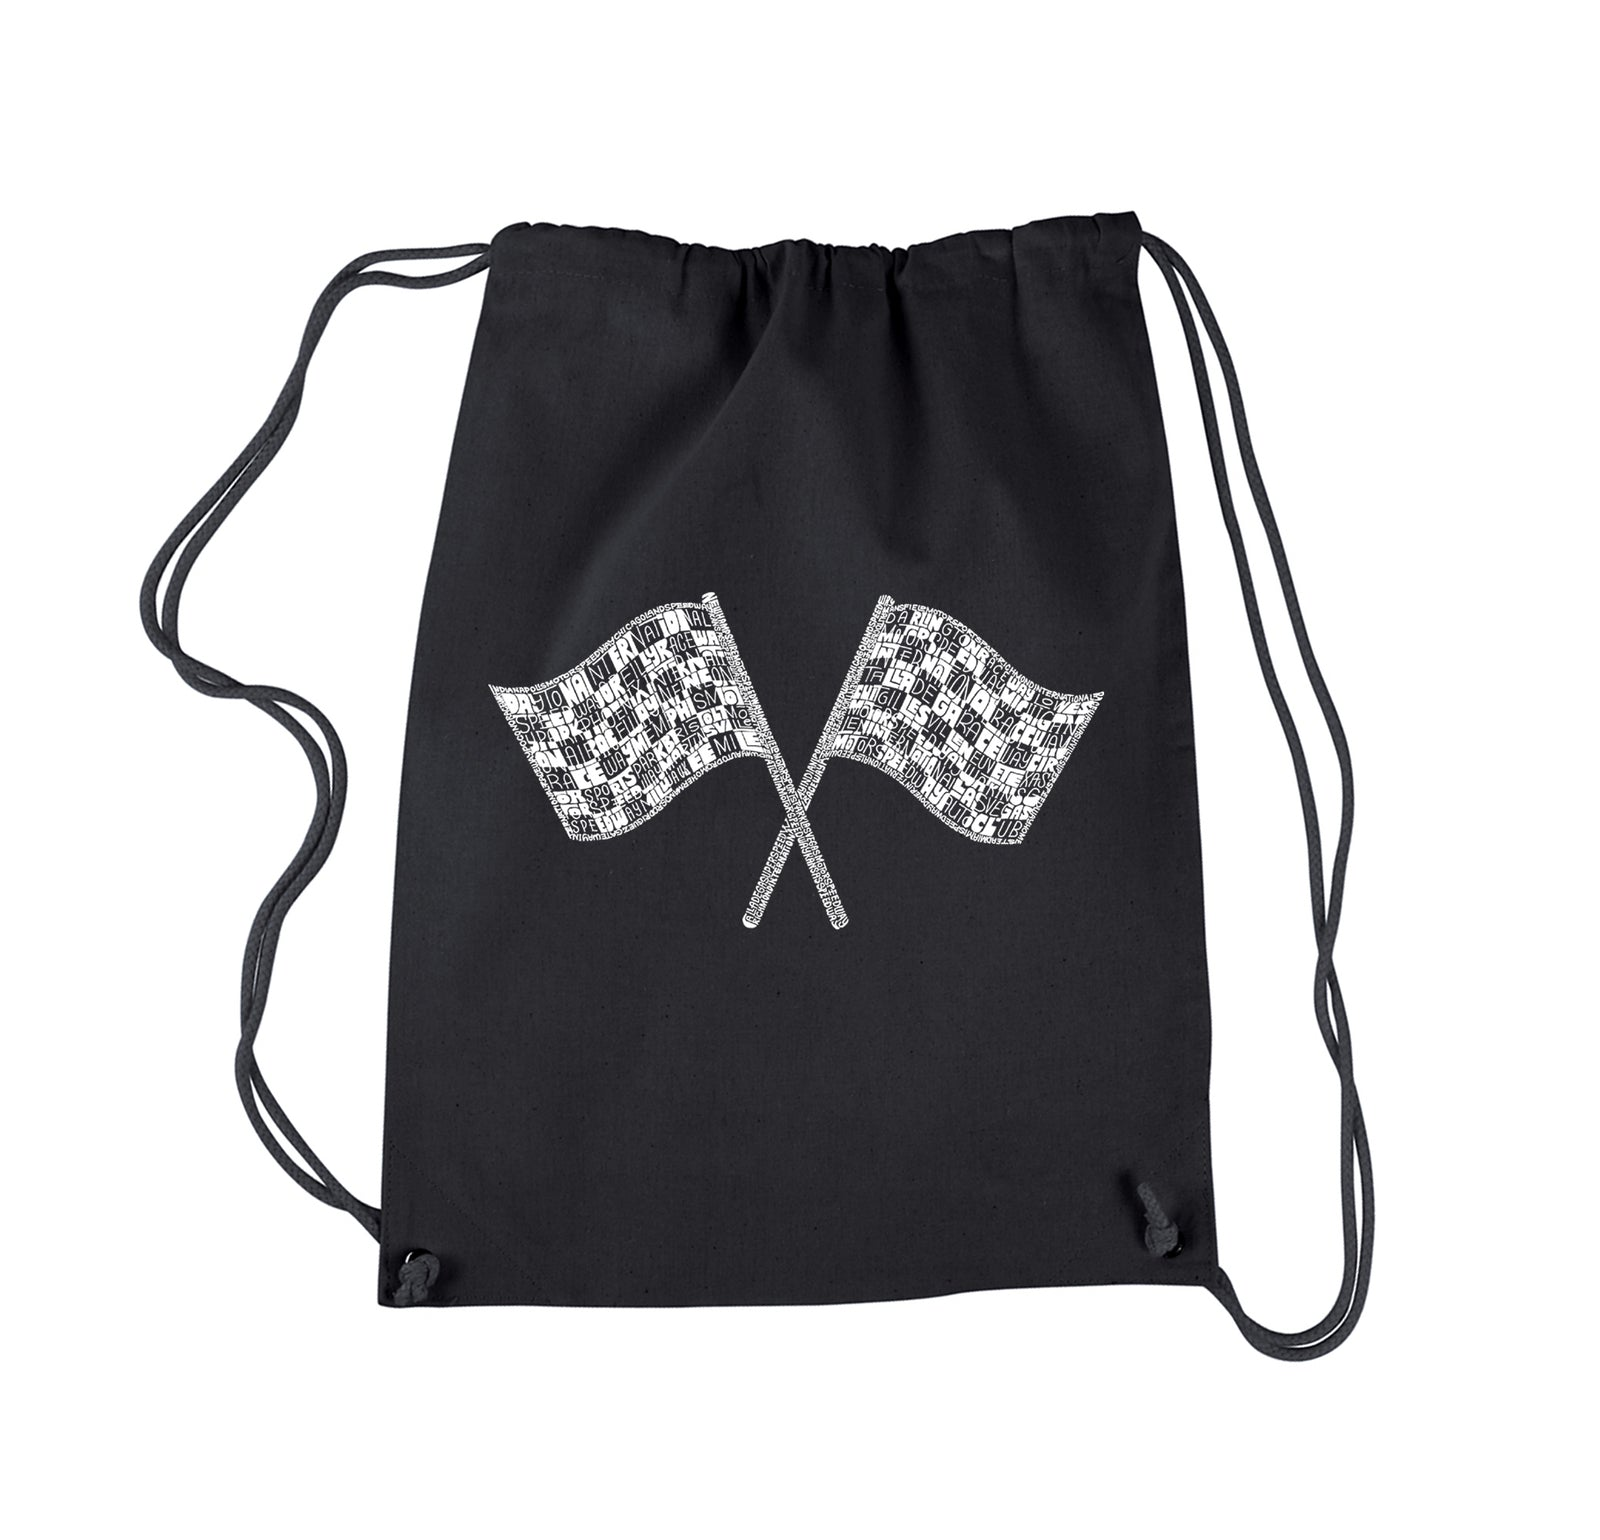 Drawstring Backpack - NASCAR NATIONAL SERIES RACE TRACKS